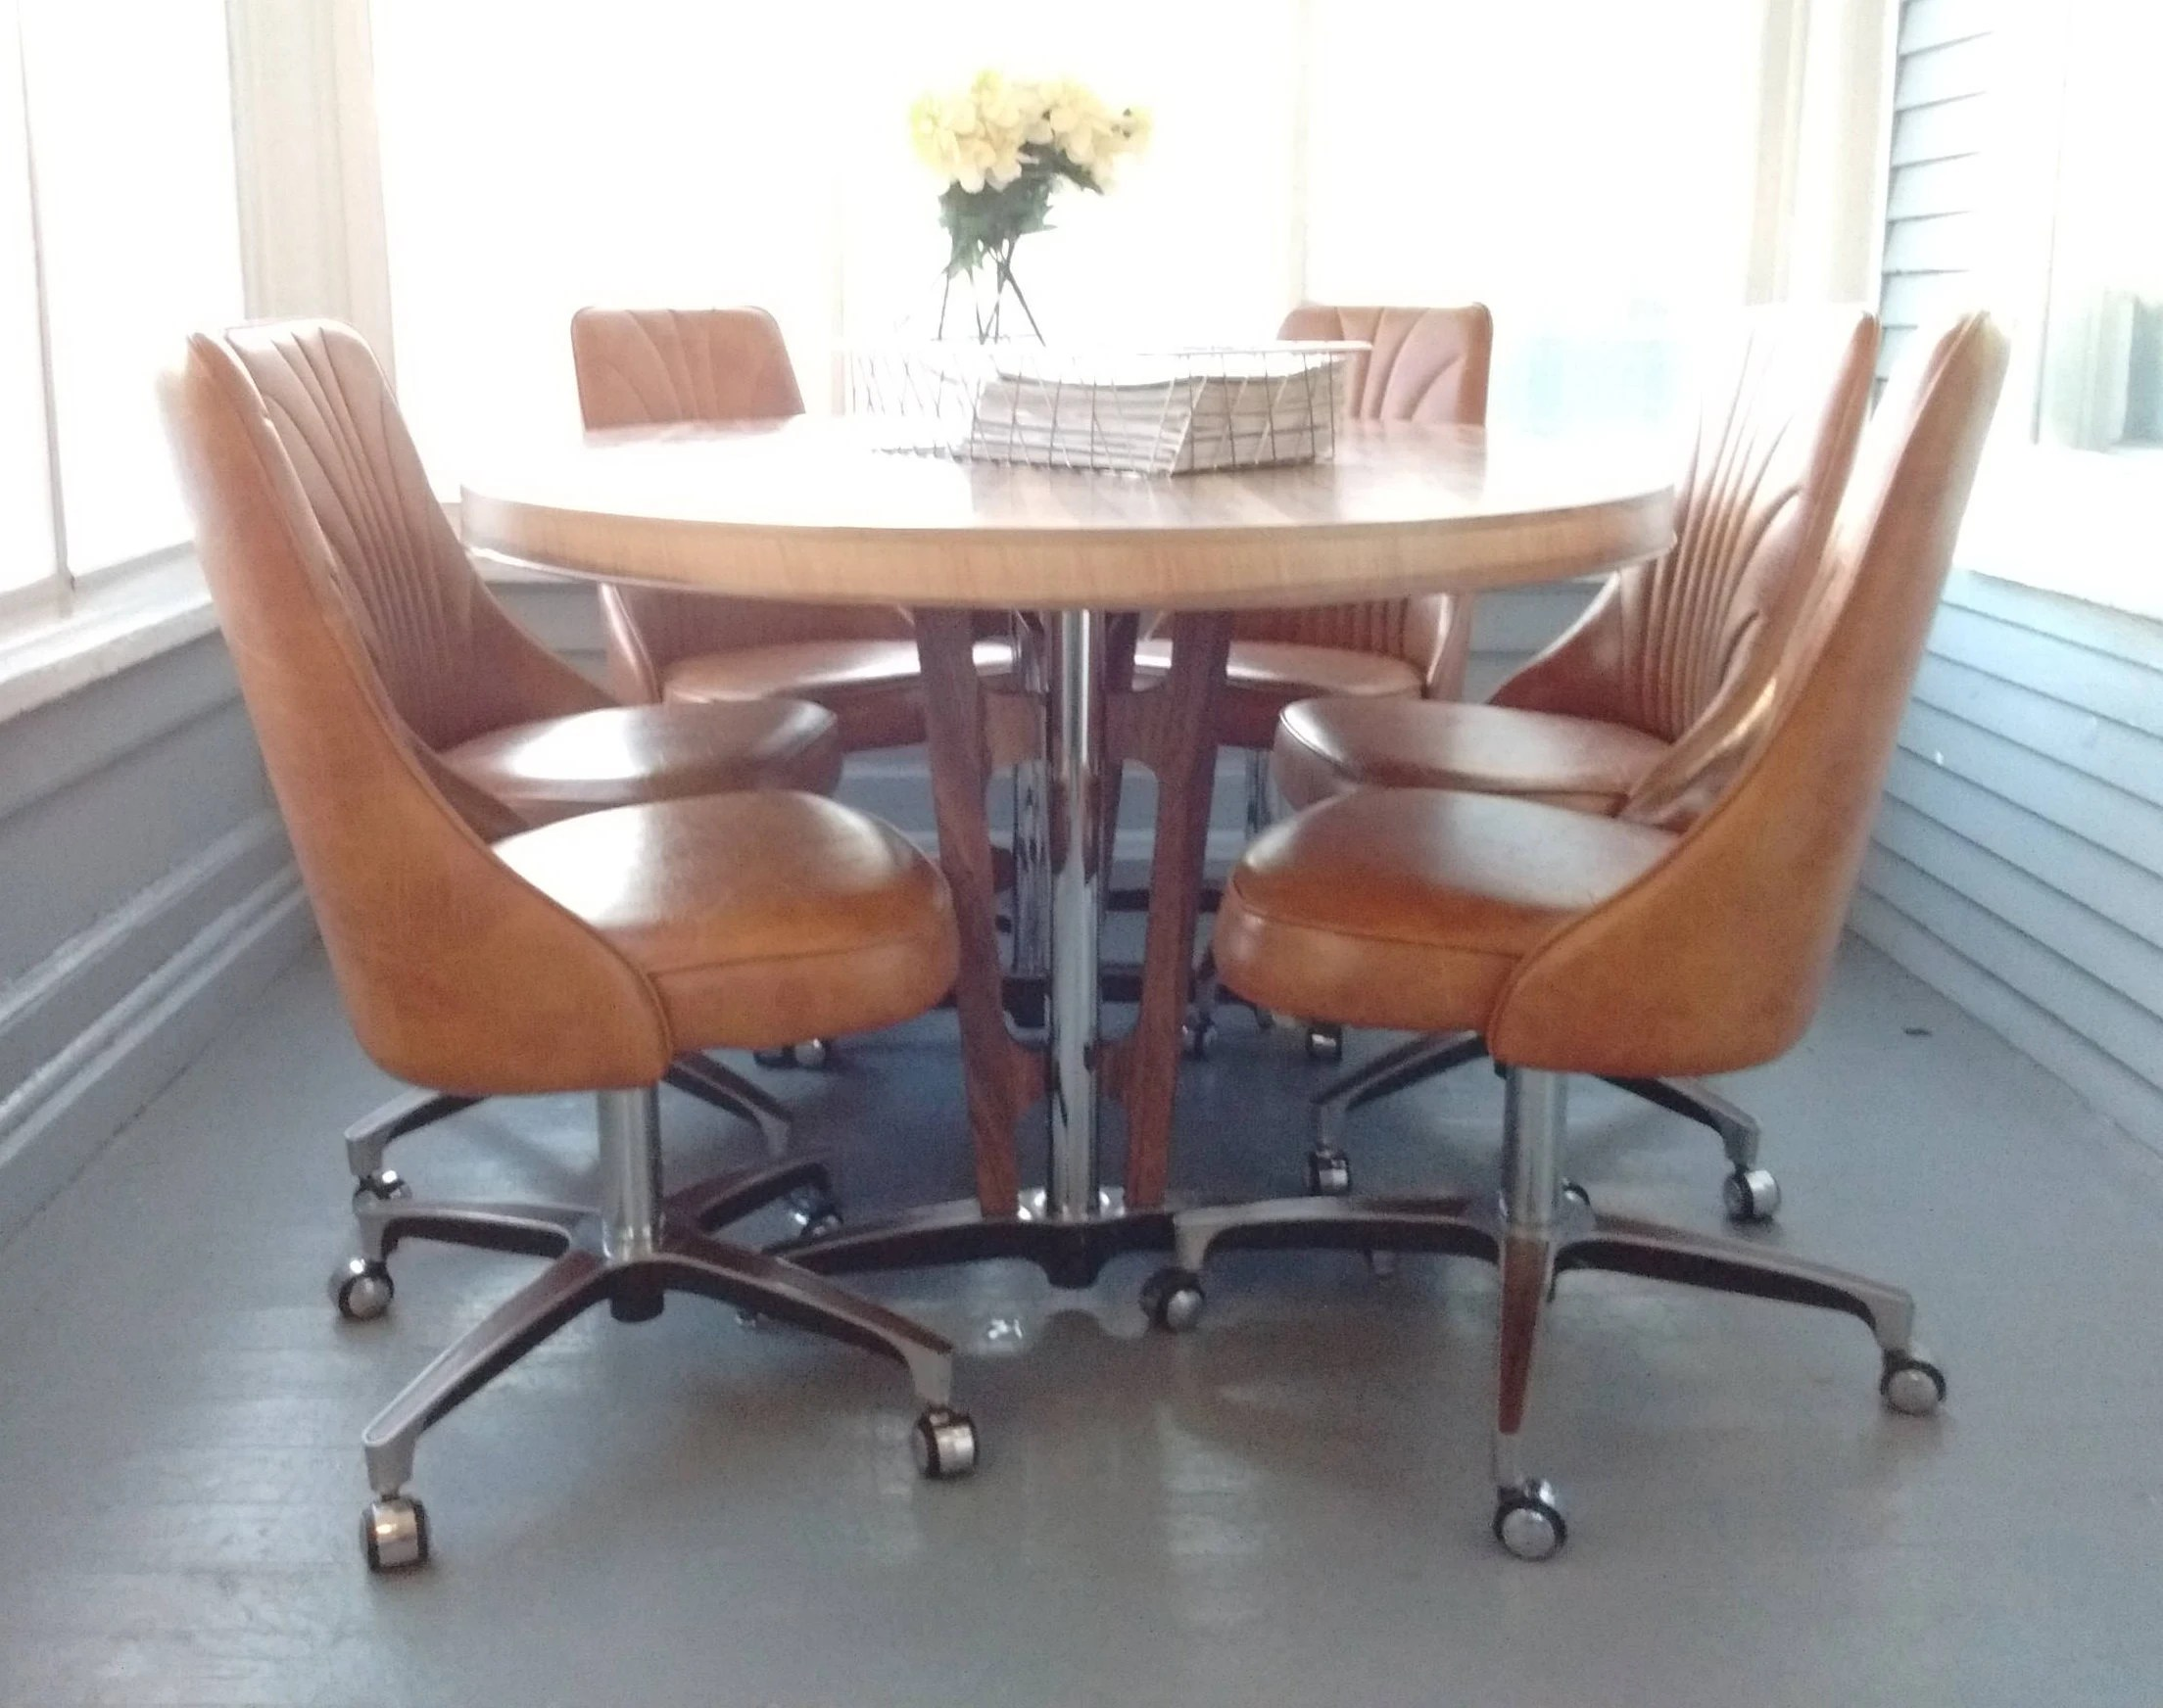 Retro Dining Set Table And Chairs 70s Chromecraft Pedestal Table Metal Oval Table Rolling Chairs Vinyl Chairs Rhymeswithdaughter